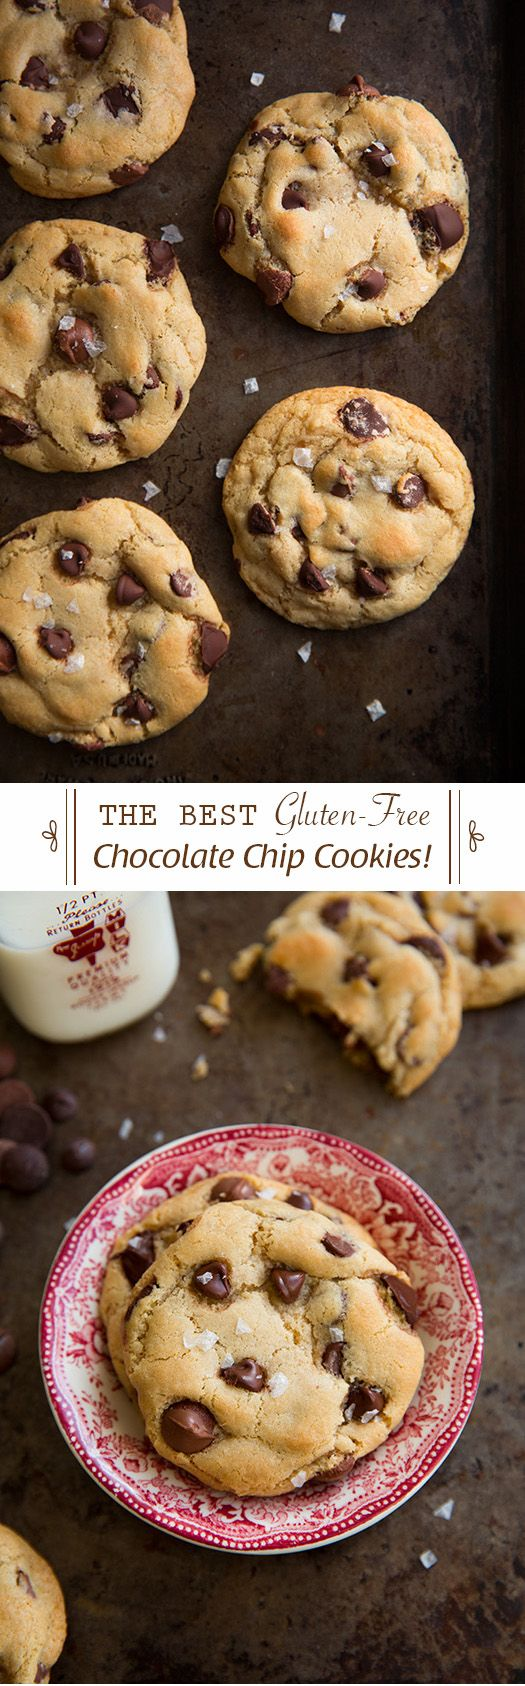 Gluten-Free Chocolate Chip Cookies {The Best!} - No one even knew they ...